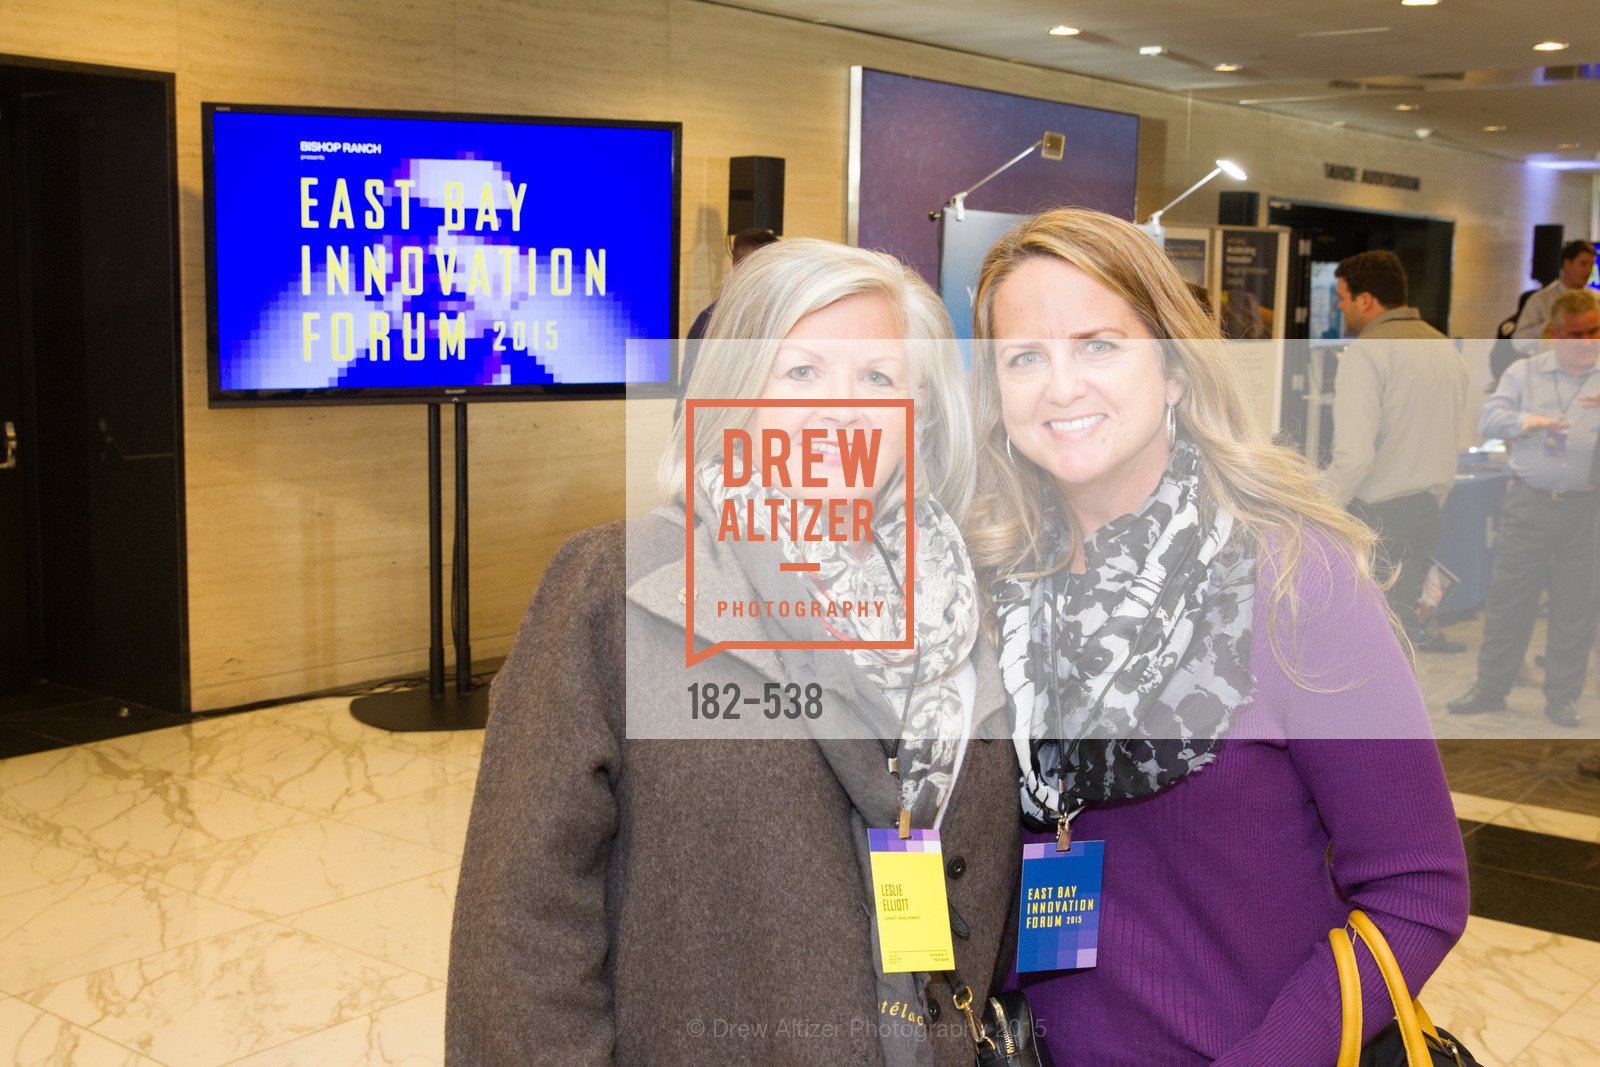 Top Picks, East Bay Innovation Forum, November 17th, 2015, Photo,Drew Altizer, Drew Altizer Photography, full-service agency, private events, San Francisco photographer, photographer california